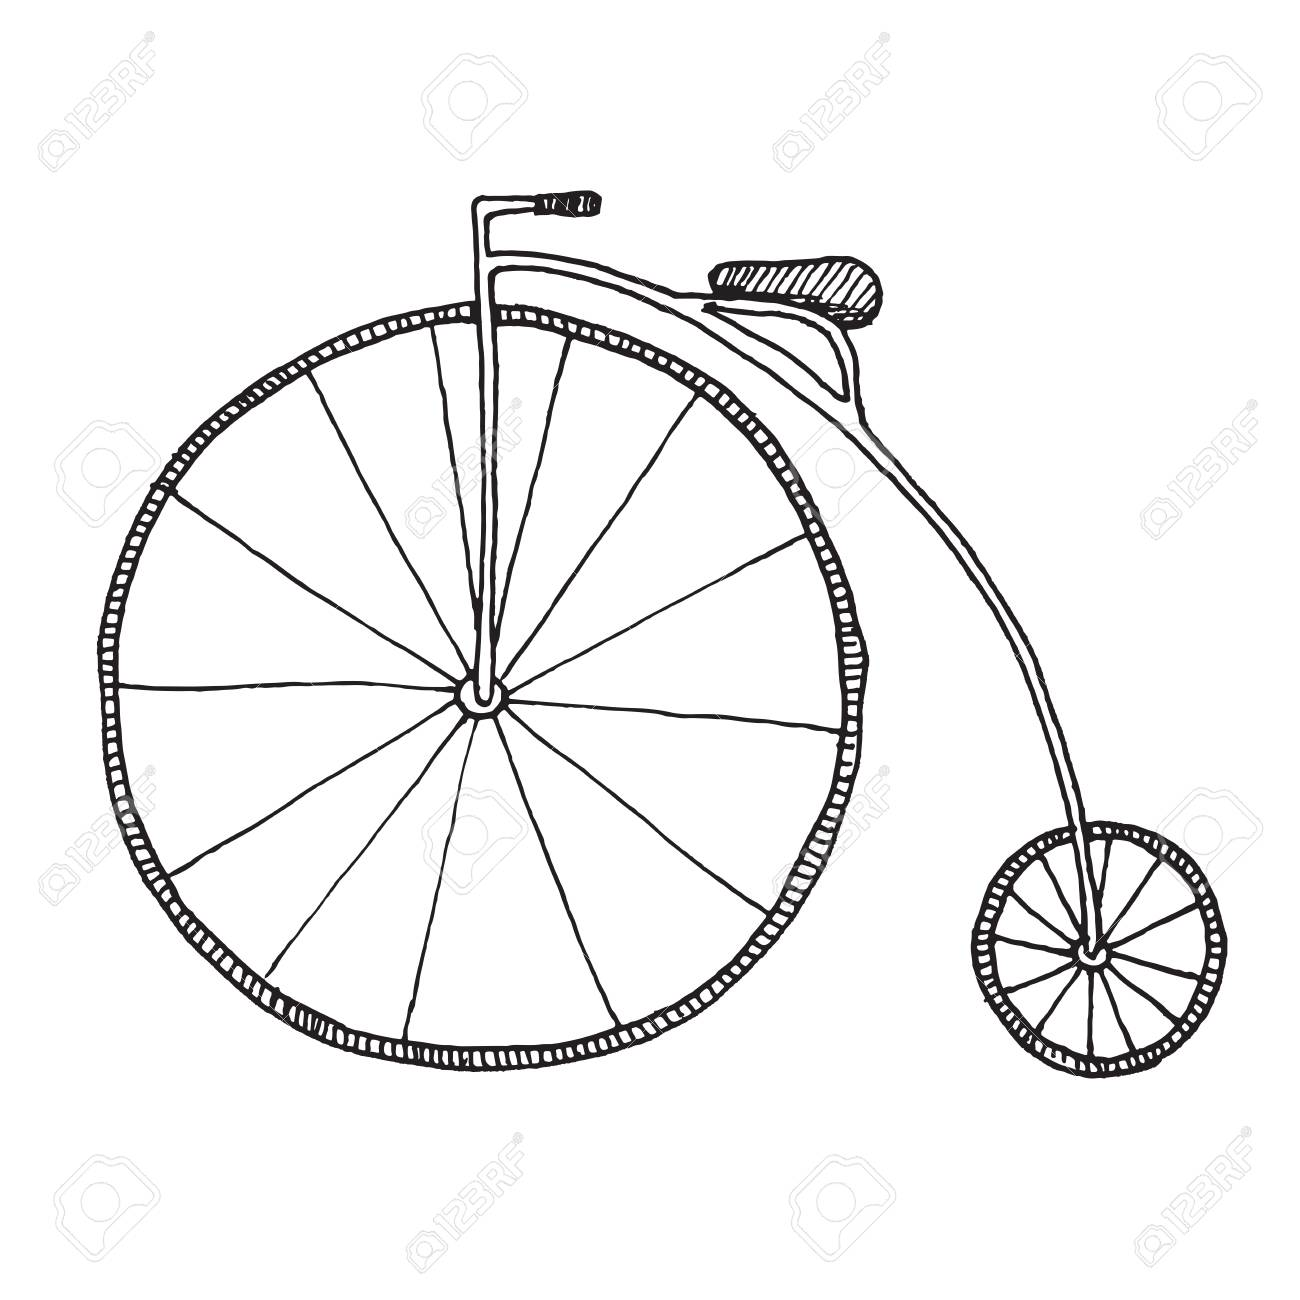 Sketch of penny farthing bicycle isolated on white background vector illustration stock vector